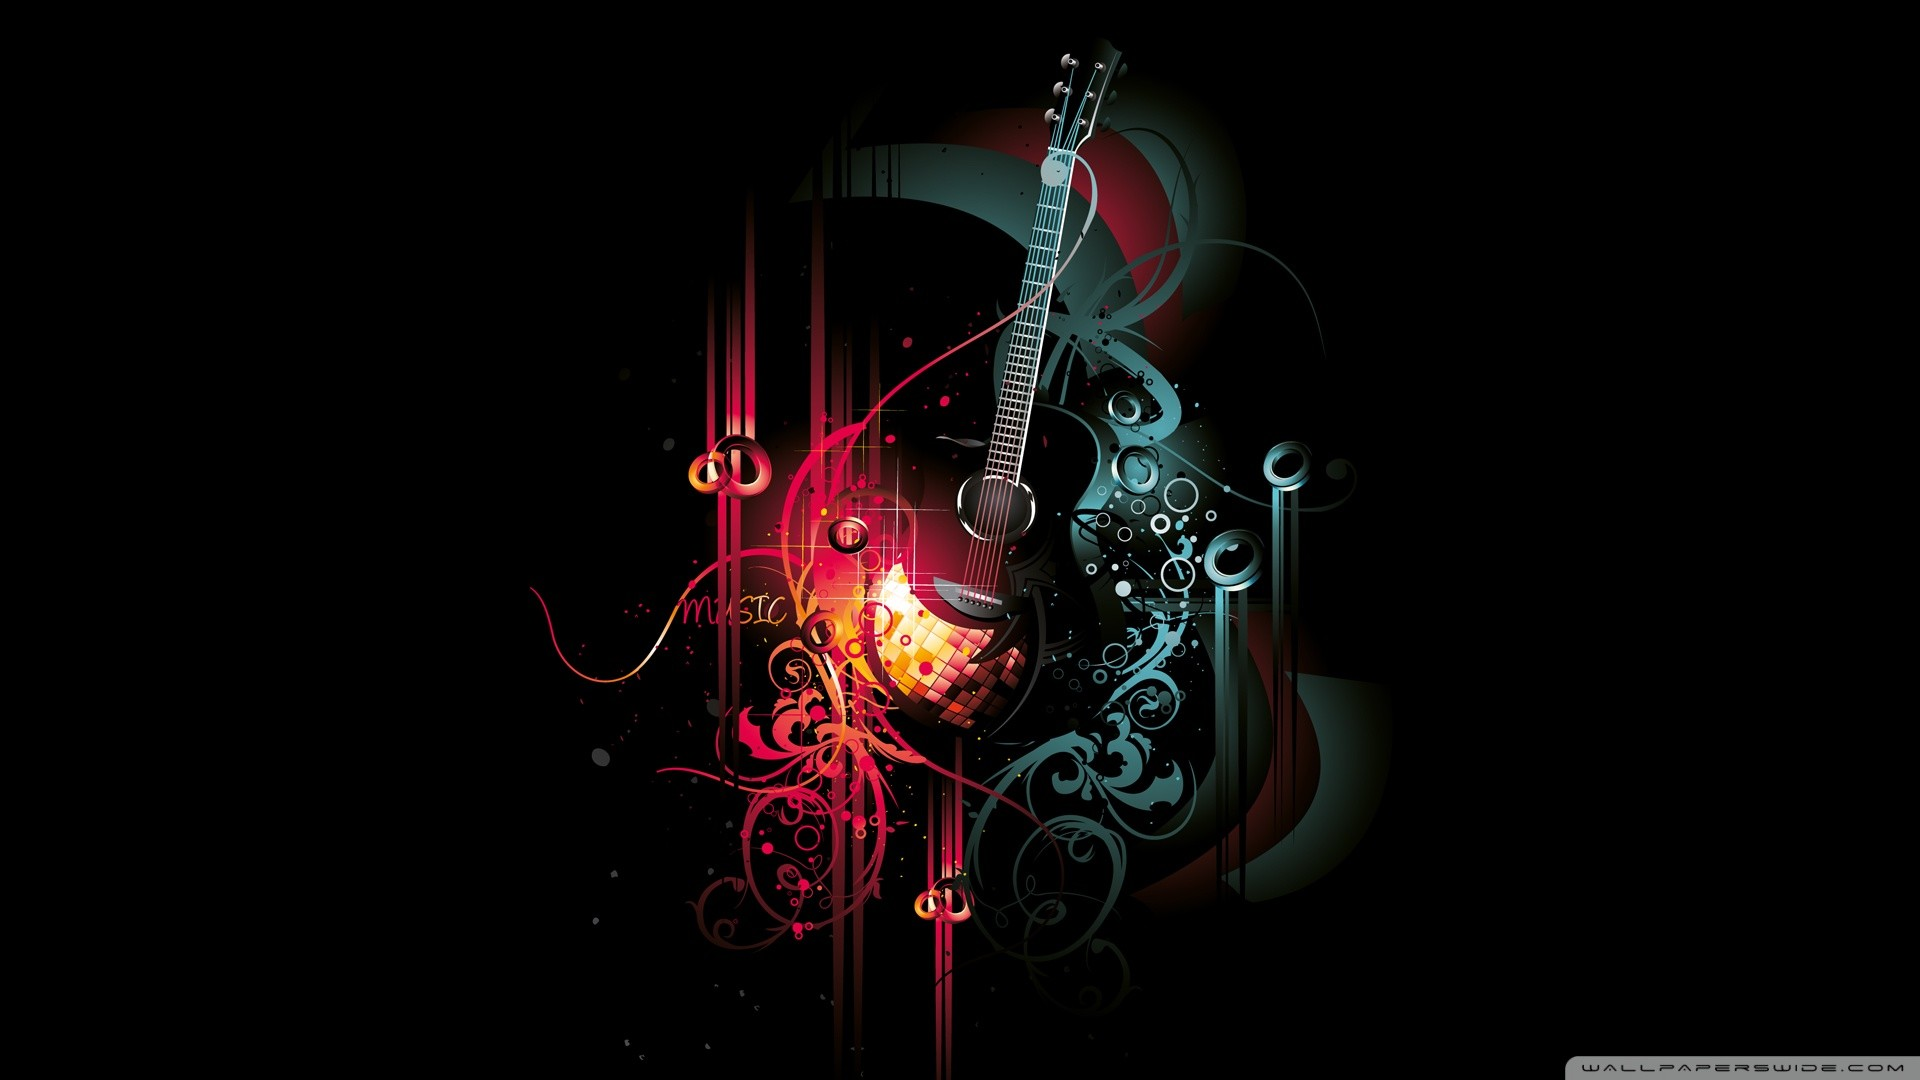 Jazz music wallpaper 54 images 1920x1080 good electro swing jazz swing hop 2014 music mix great s strong upbeat instrumental jazz music youtube download voltagebd Gallery